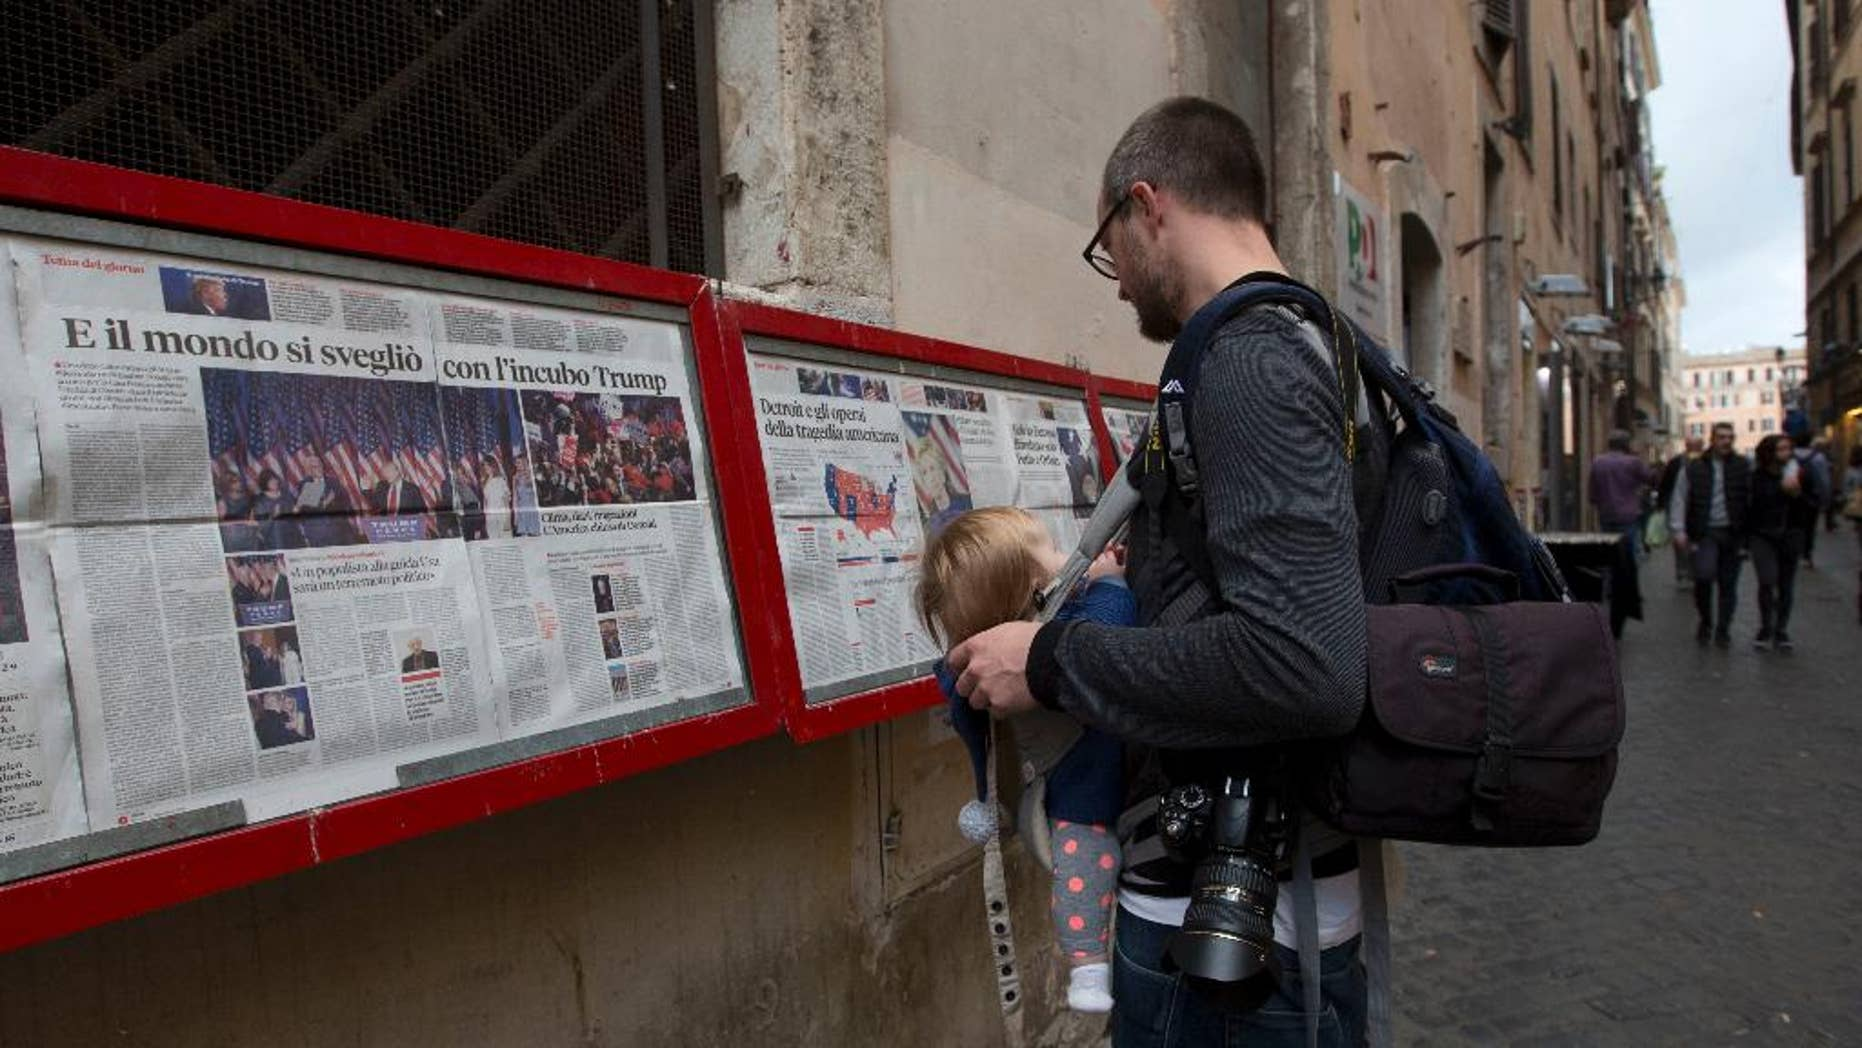 """Newspapers headlining the US President-elect Donald Trump's victory over Hillary Clinton hang from a wall outside a Democratic party office in downtown Rome, Thursday, Nov. 10, 2016. Headline reads in Italian """"And the world woke up with Trump nightmare"""". (AP Photo/Alessandra Tarantino)"""